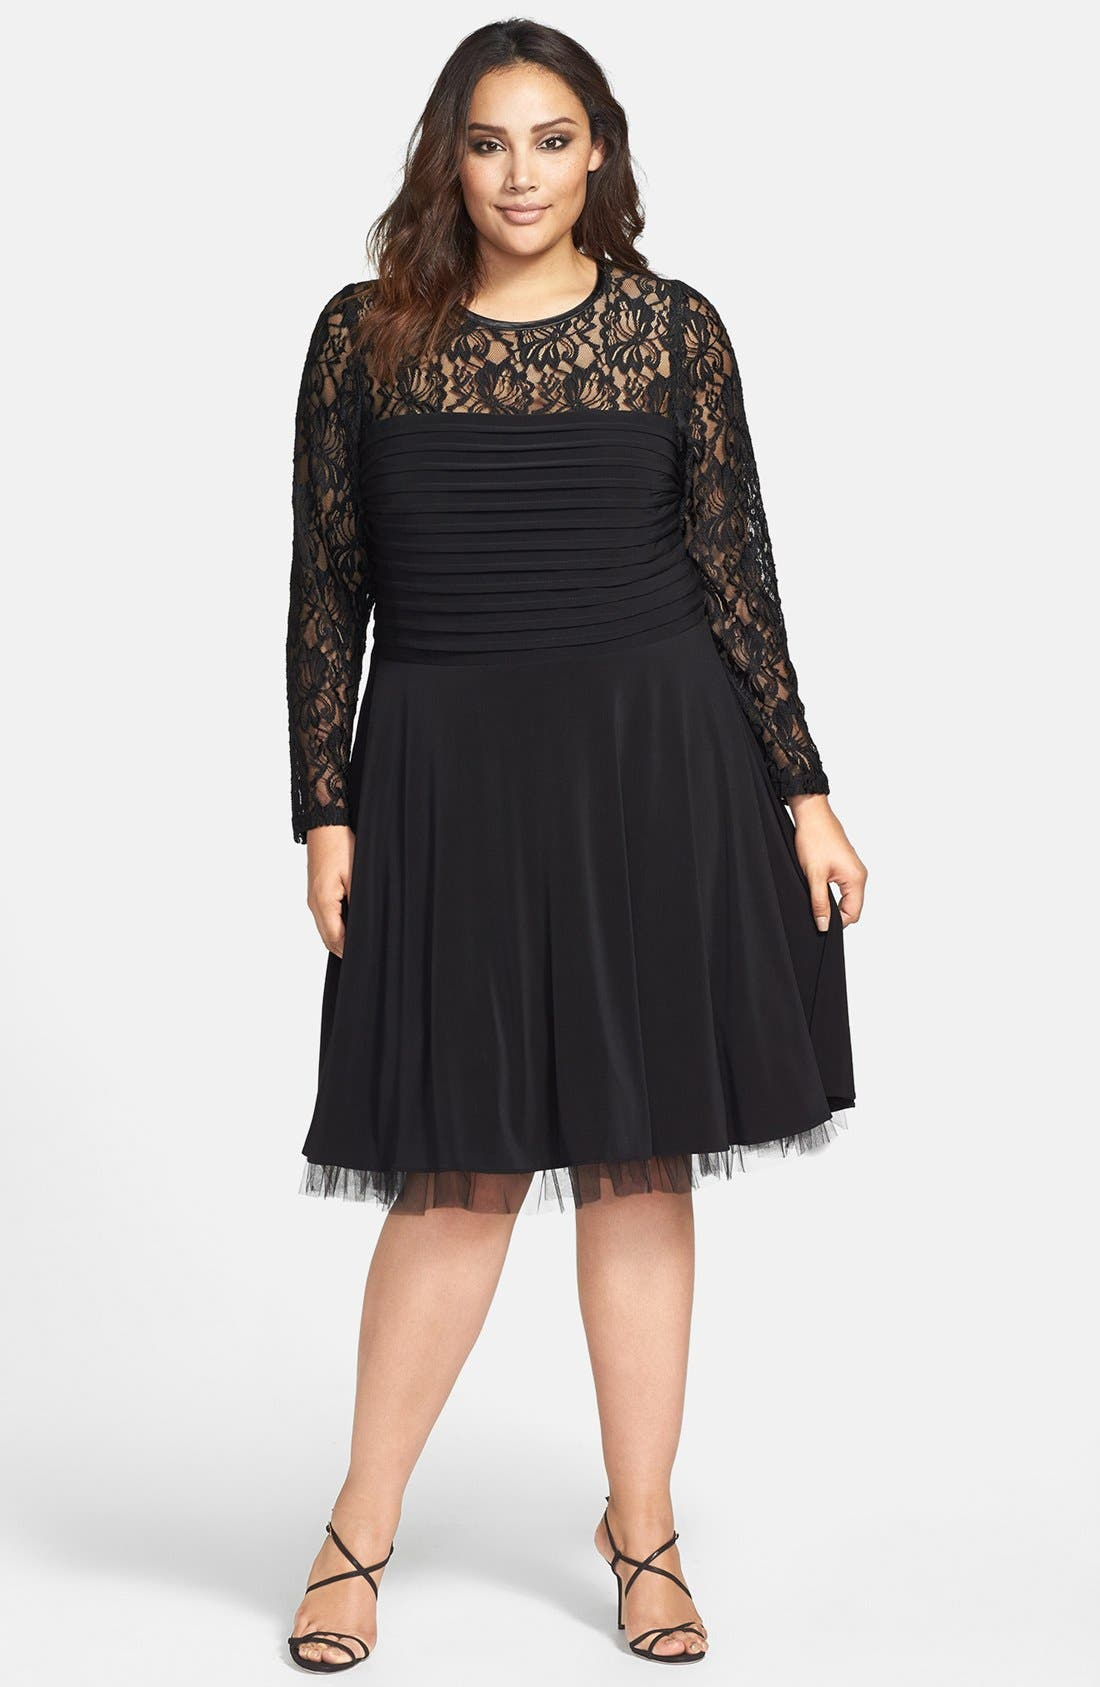 Main Image - Betsy & Adam Lace Overlay Fit & Flare Dress (Plus Size)